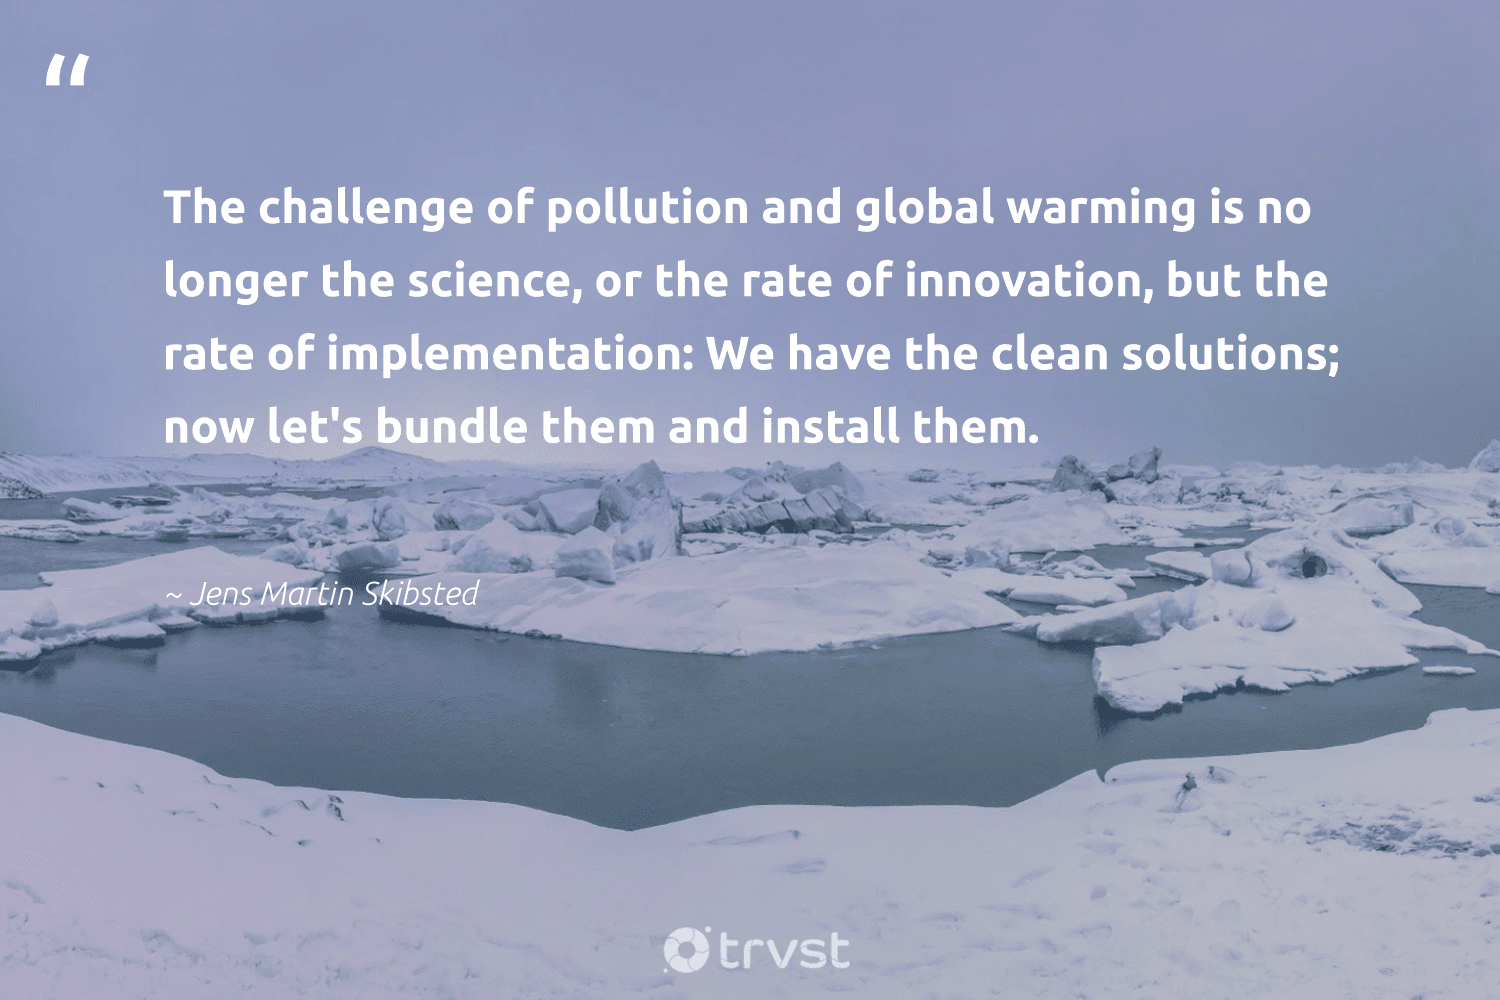 """""""The challenge of pollution and global warming is no longer the science, or the rate of innovation, but the rate of implementation: We have the clean solutions; now let's bundle them and install them.""""  - Jens Martin Skibsted #trvst #quotes #globalwarming #pollution #science #spill #climatefight #environmentallyfriendly #socialchange #toxic #climatechangeisreal #noplanetb"""